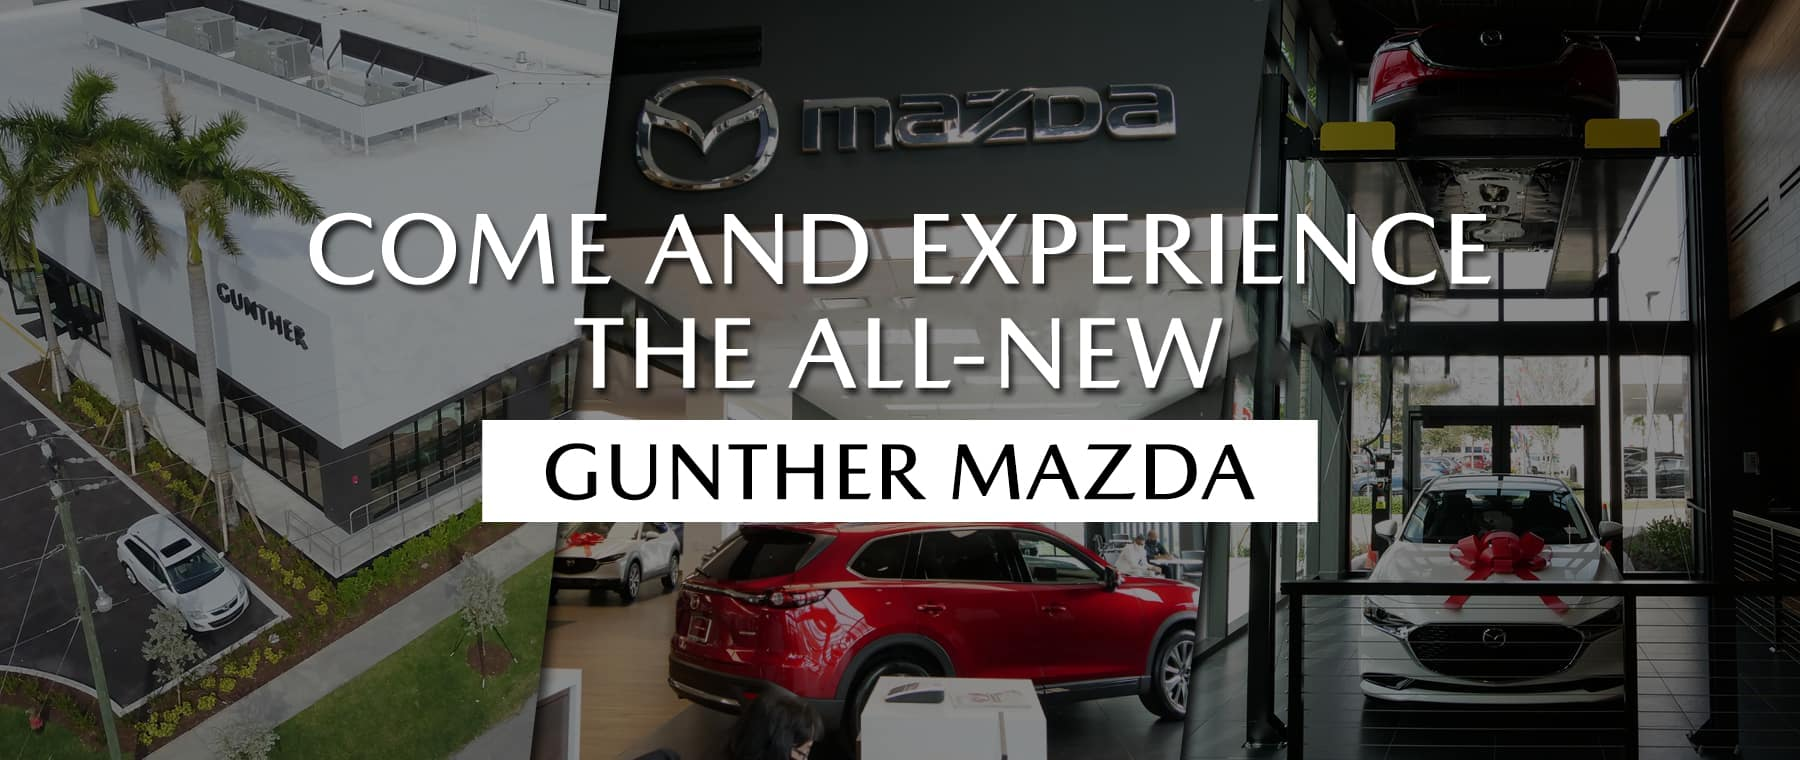 Come and experience the all-new Gunther Mazda.